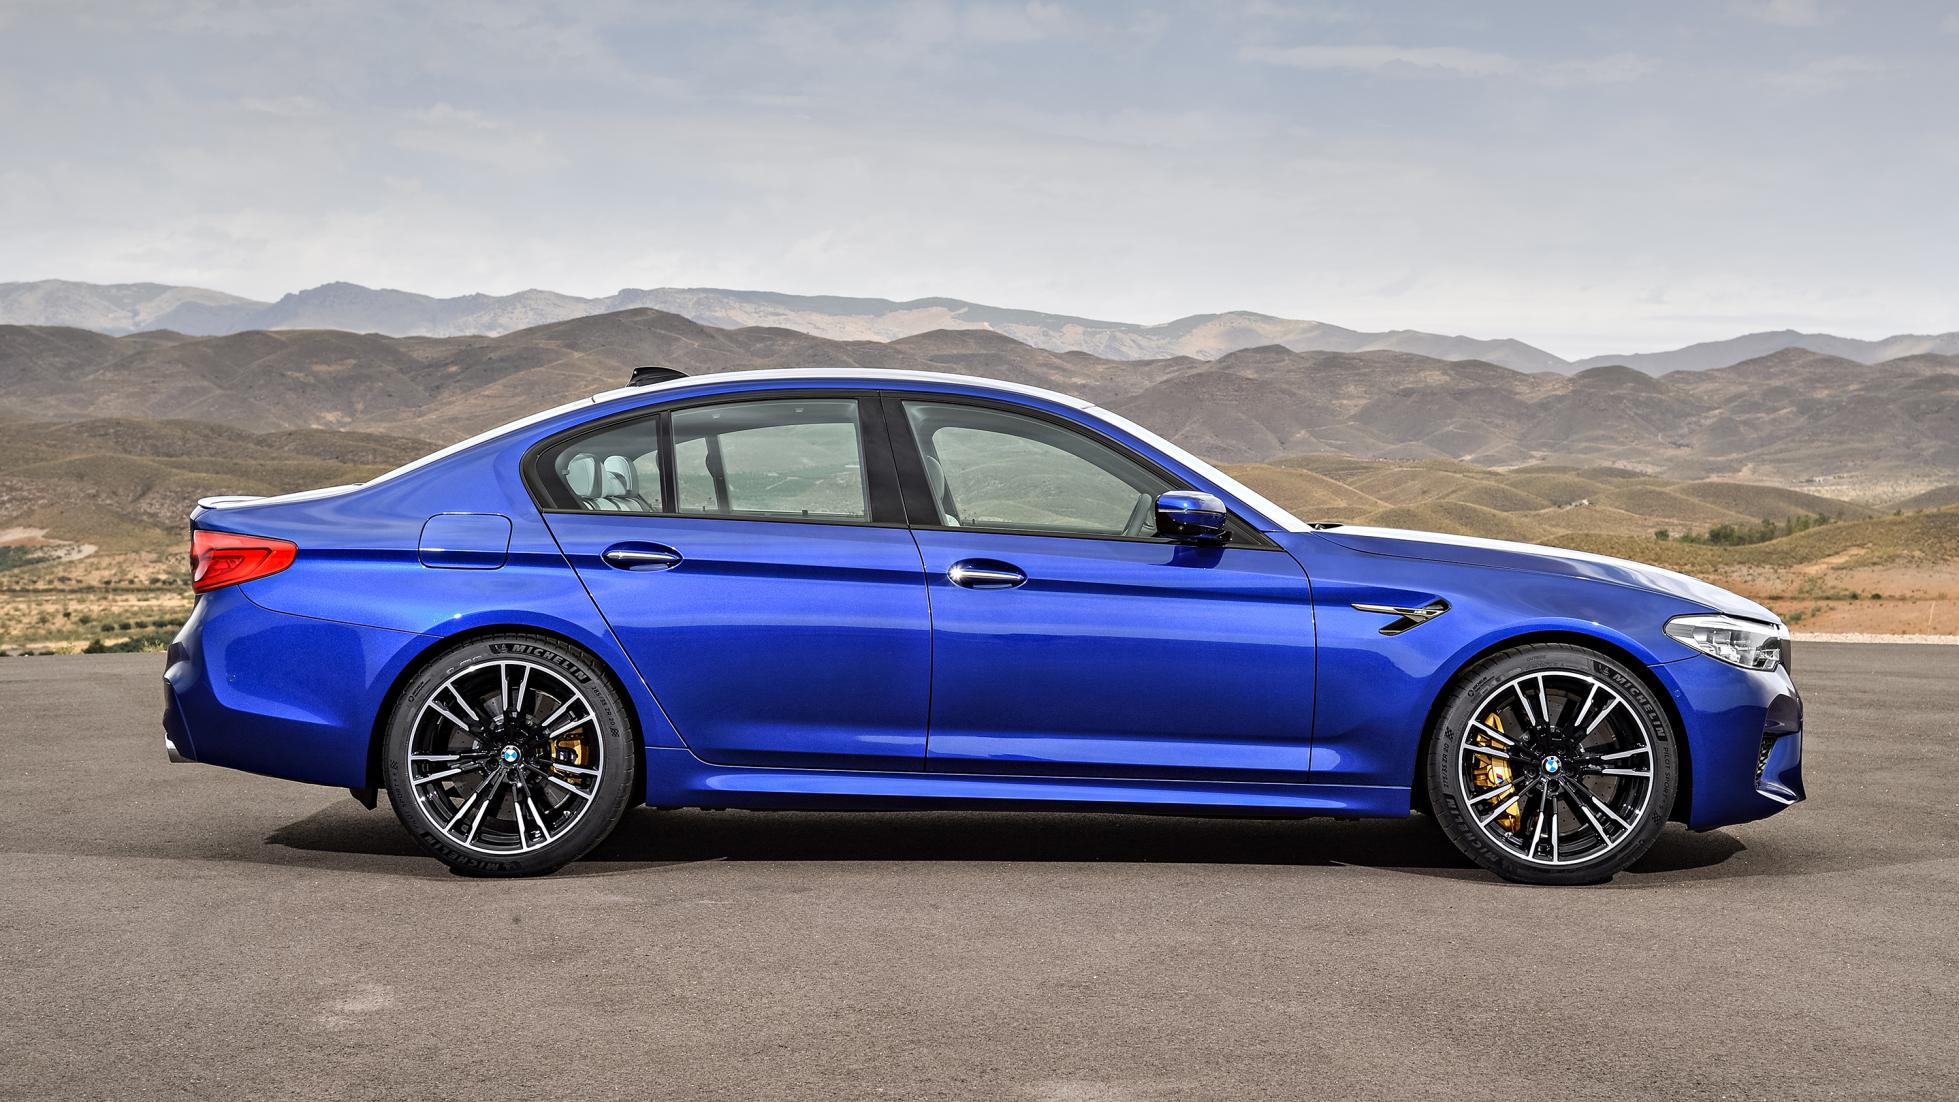 p90273001_highres_the-new-bmw-m5-08-20